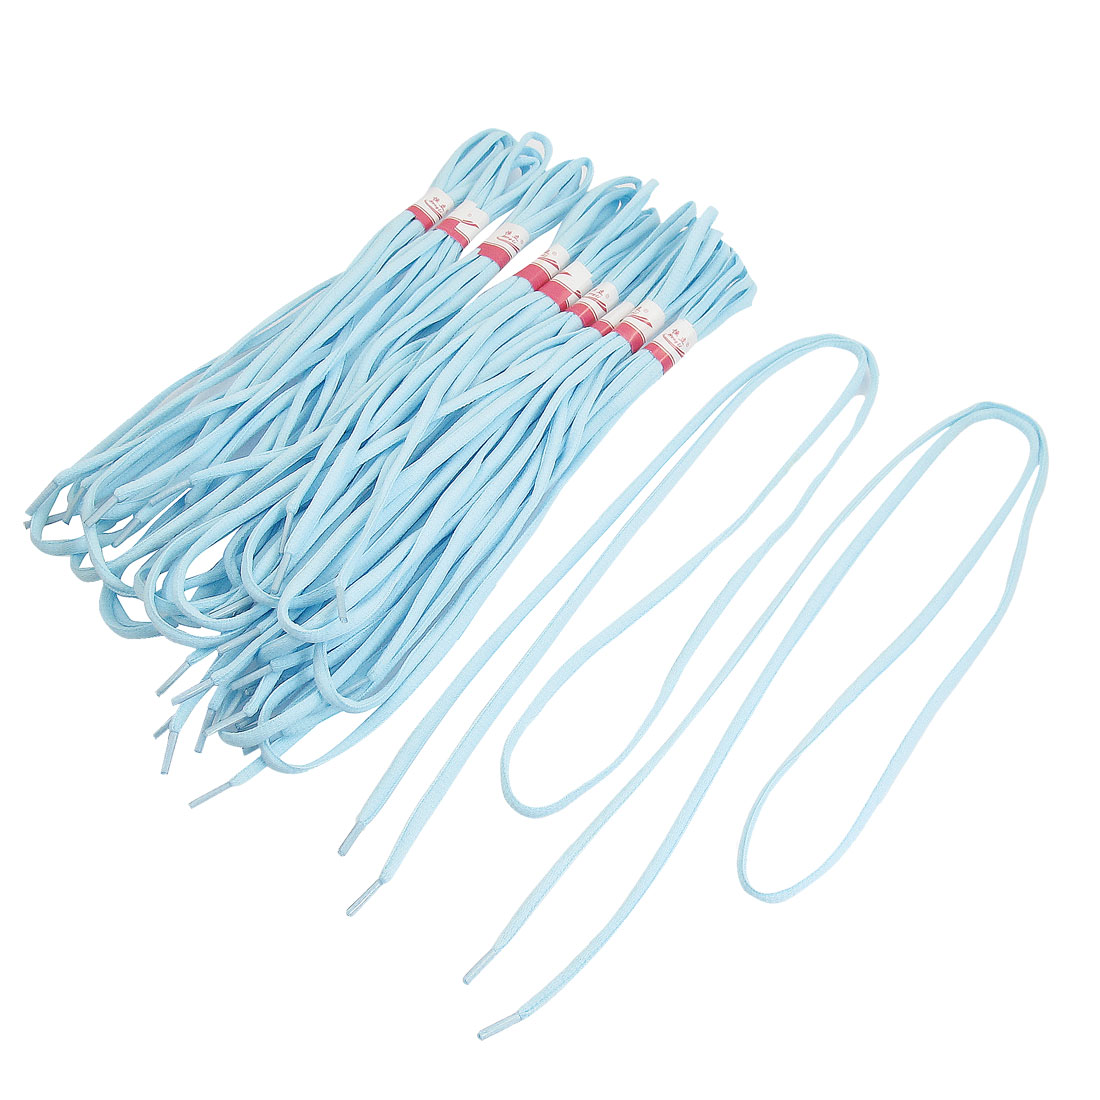 10 Pairs 120cm Long Sport Leisure Shoes Sneakers Round Shoelaces Light Blue